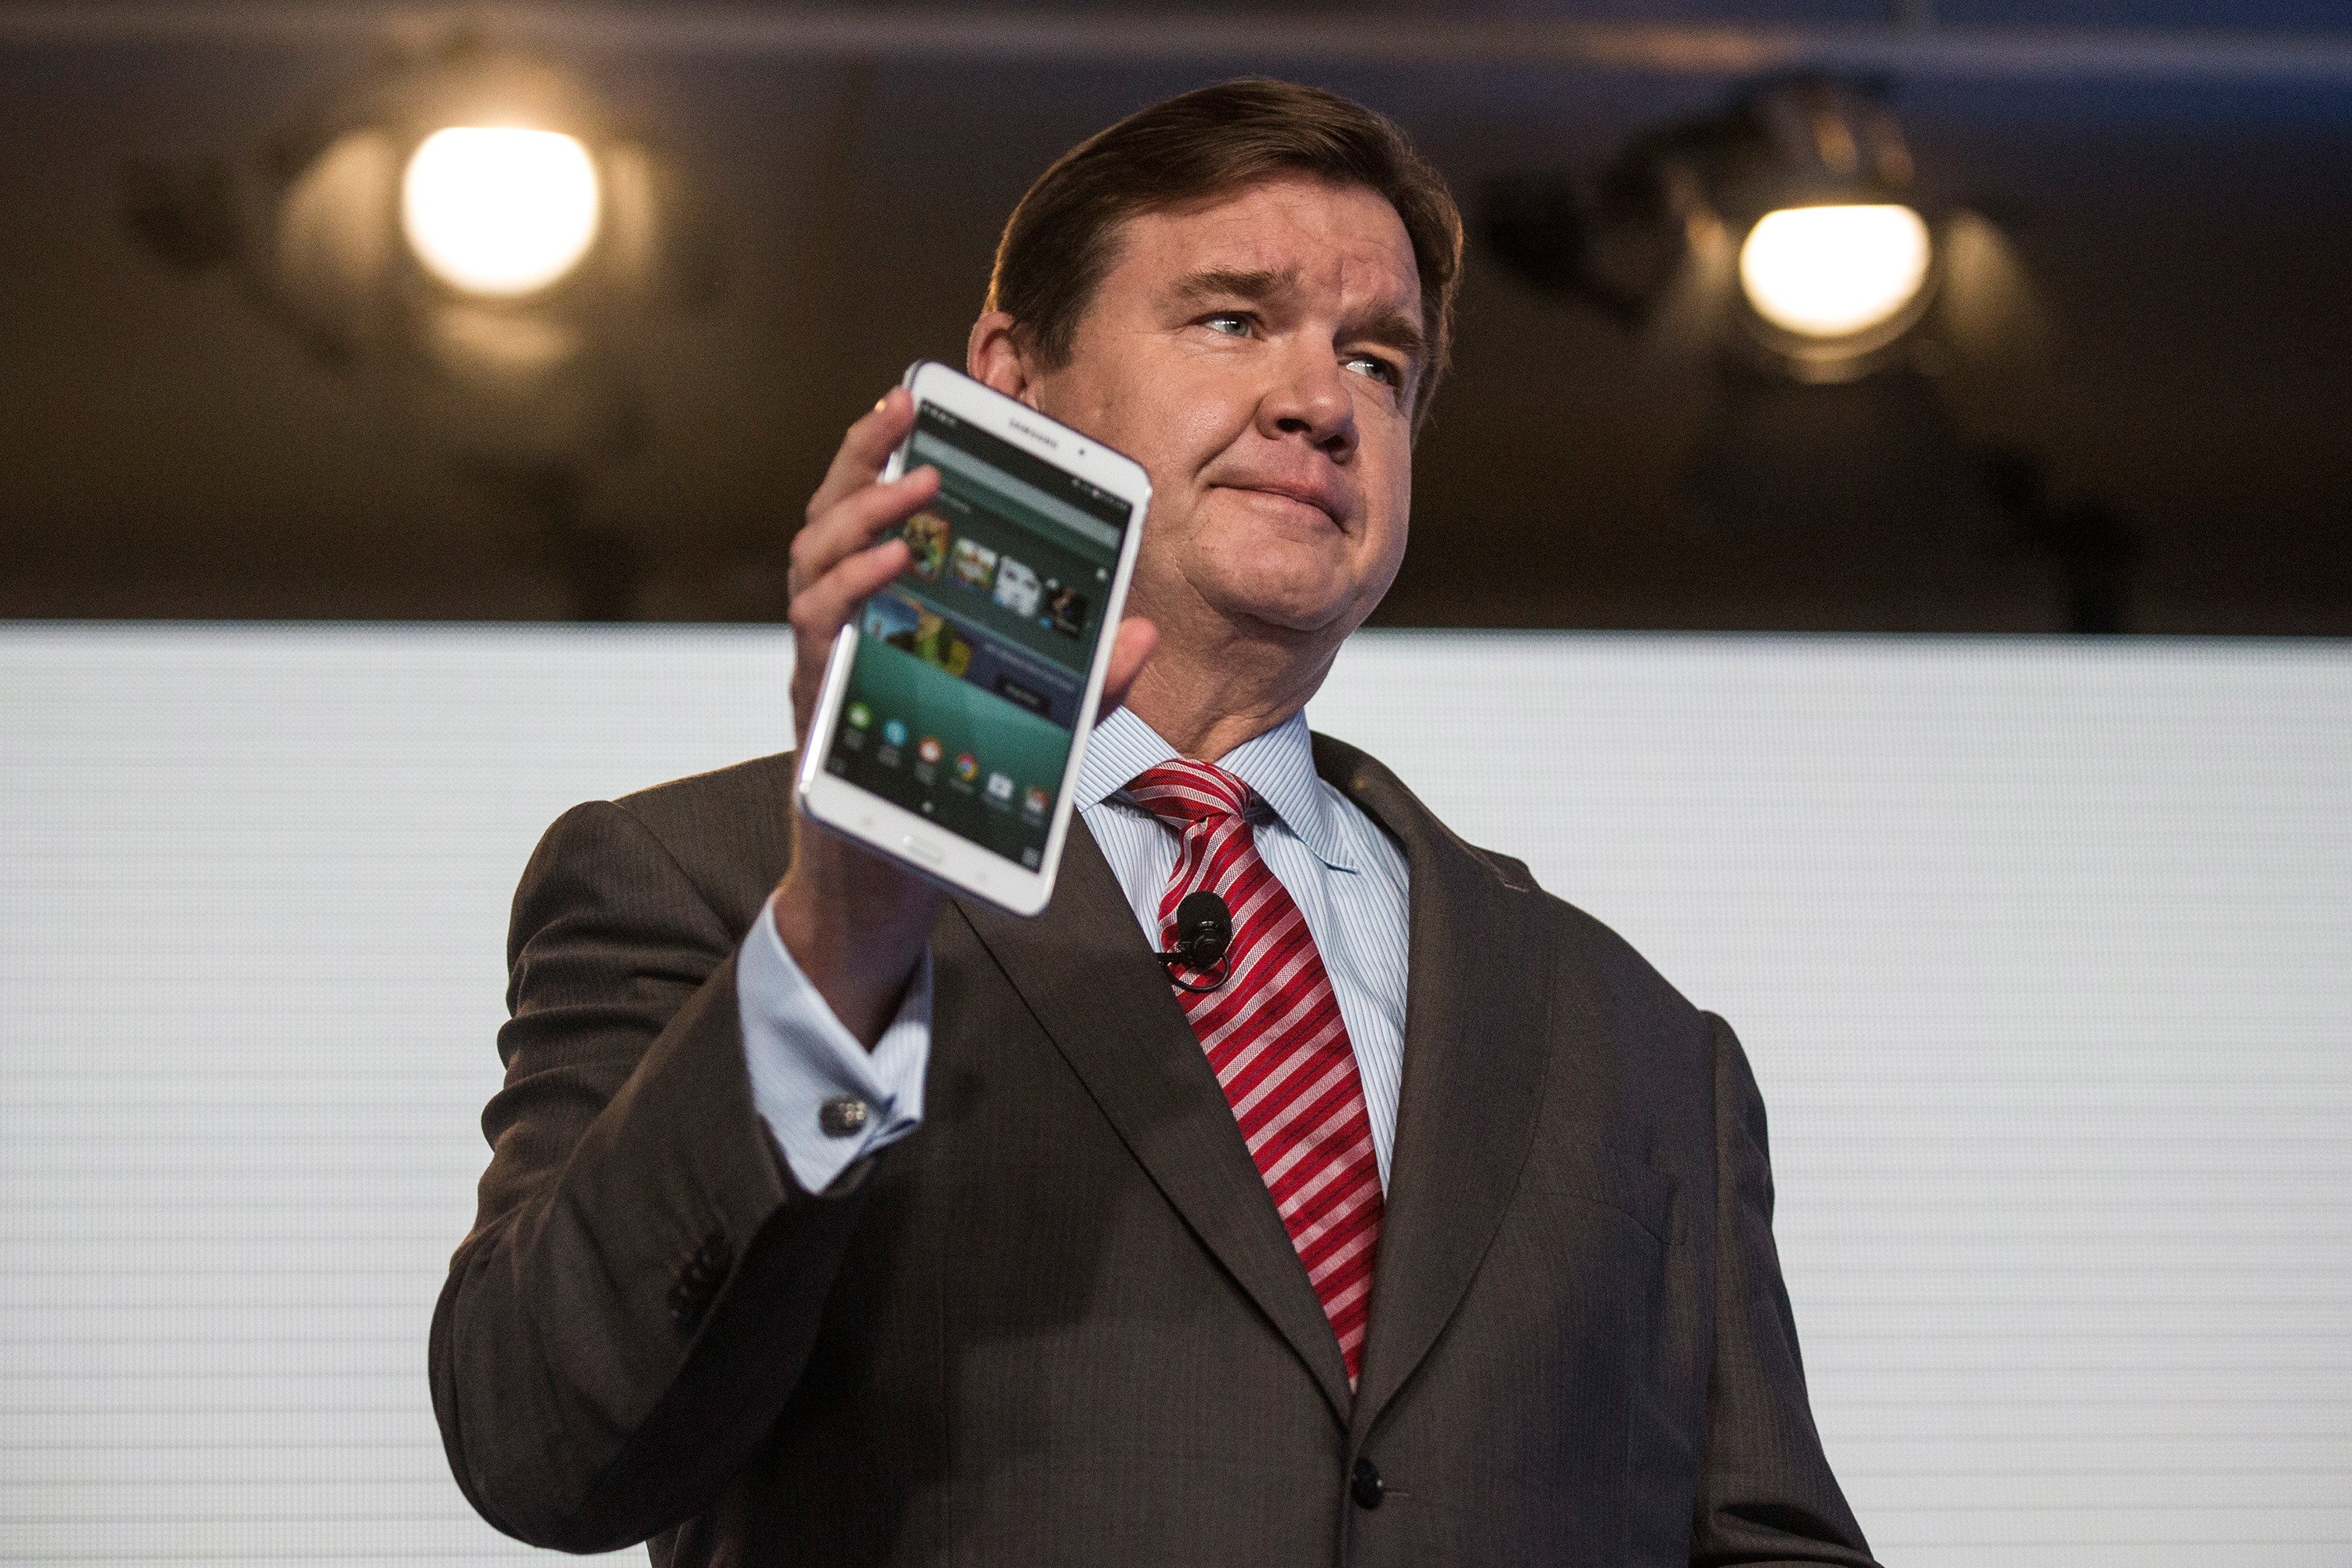 Samsung And Barnes & Noble Make Announcement On New Joint Device